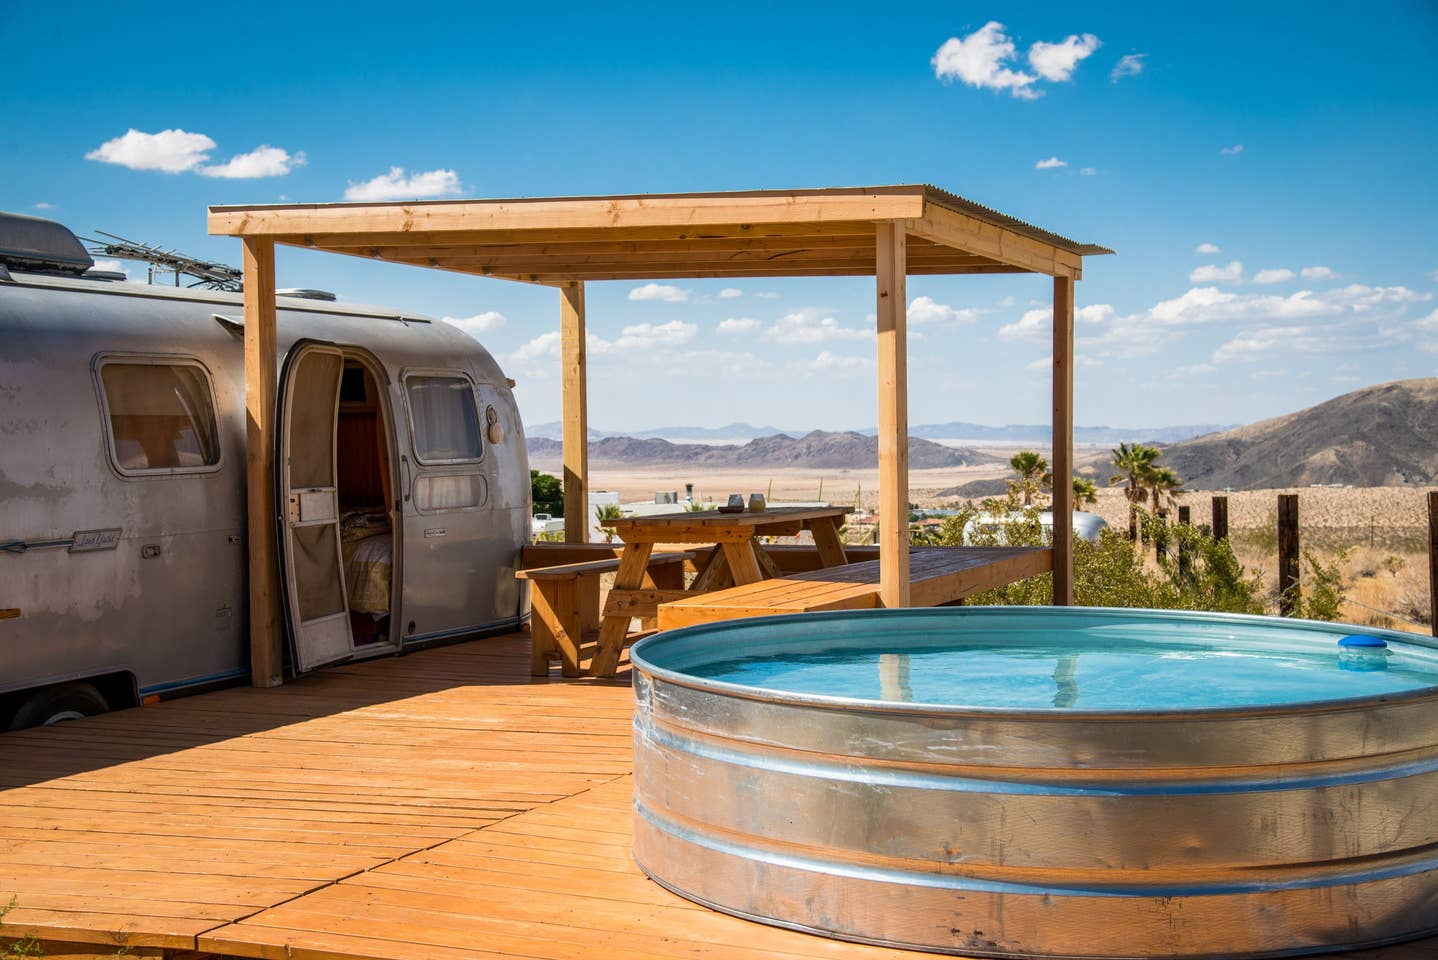 Most Unique USA Airbnbs Joshua Tree tin pool airstream